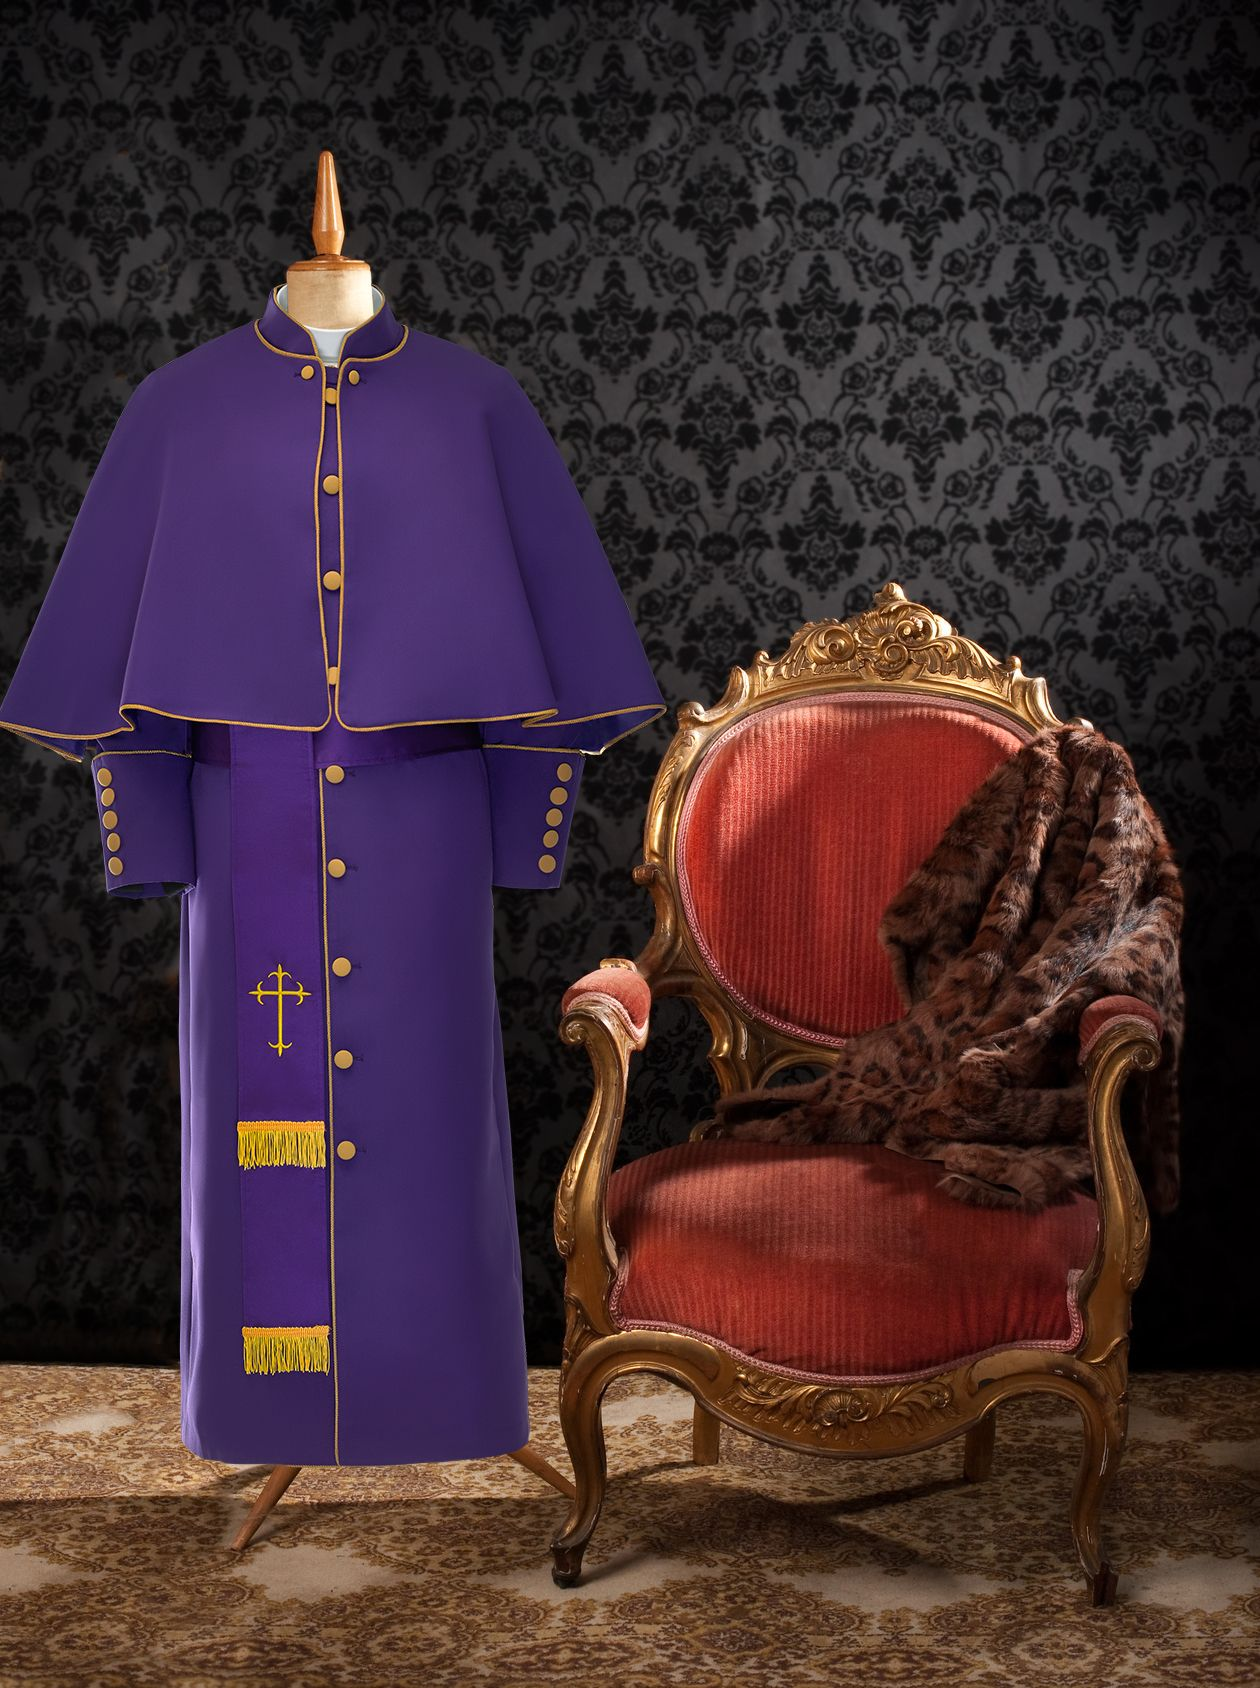 174 W. Limited Exclusive Women's Pastor/Clergy Robe Purple/Gold Luxury Ensemble